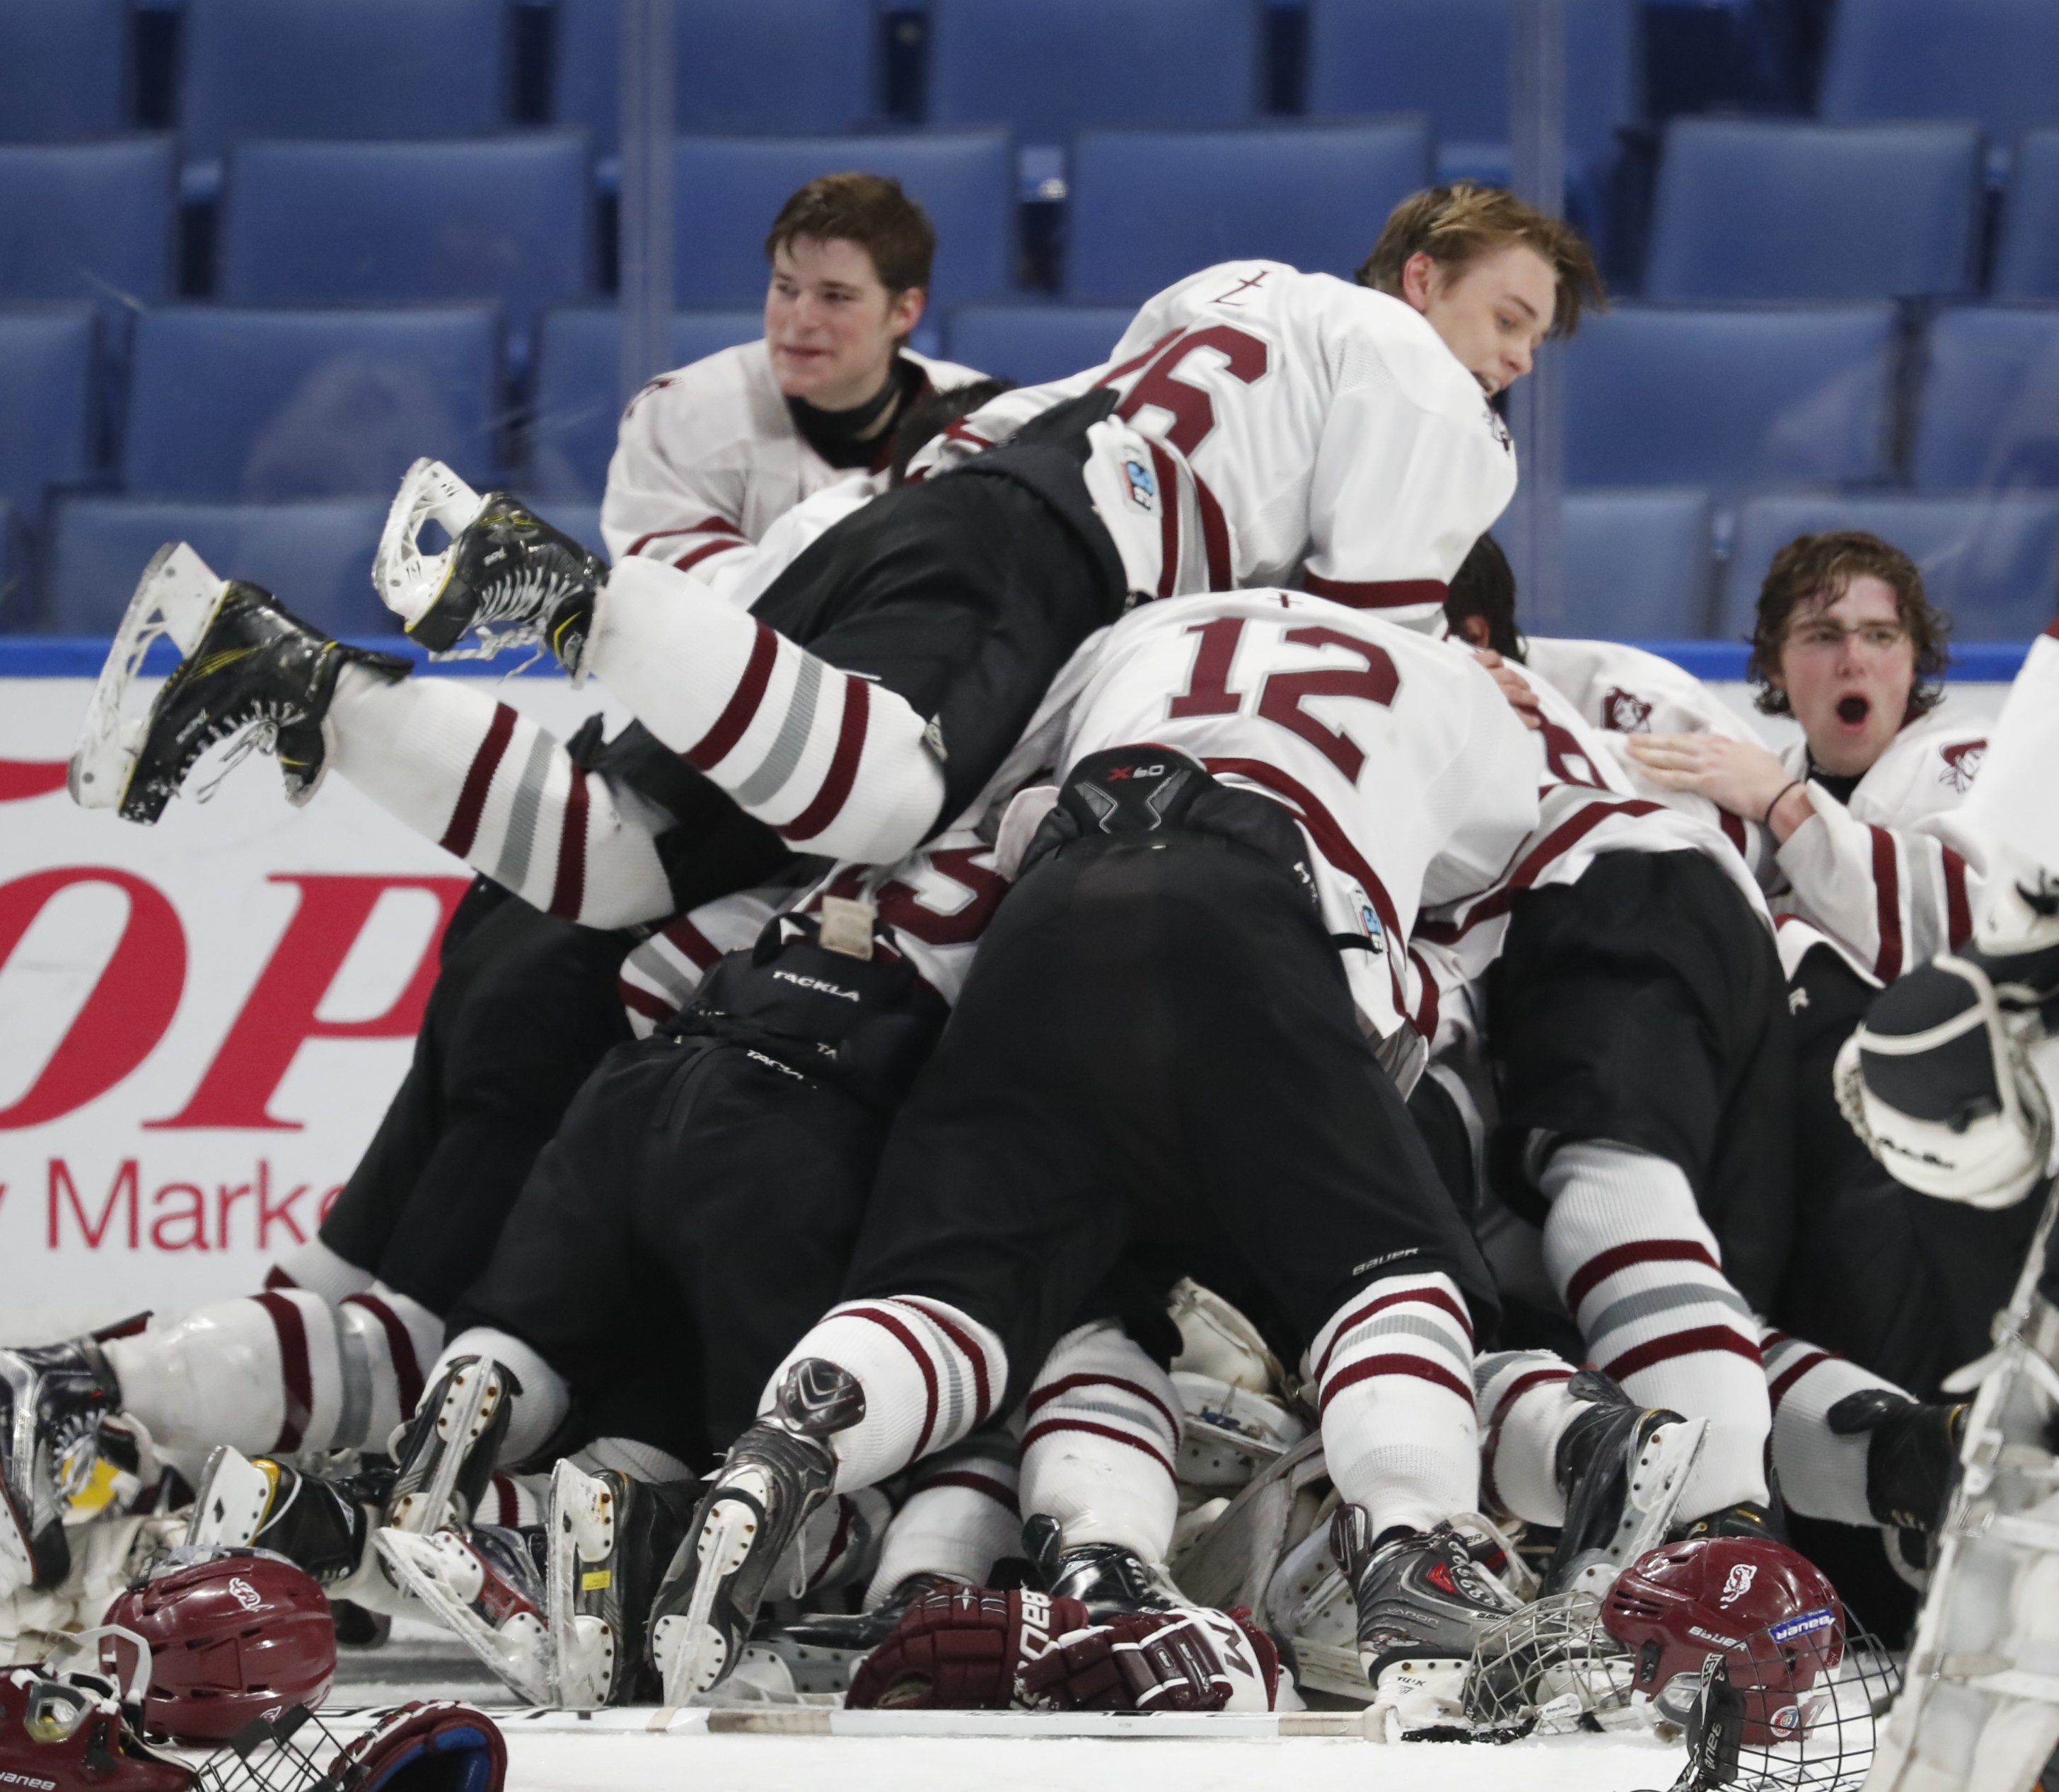 St. Joe's Trevor Conschafter jumps on the victory pile after the Marauders captured the Niagara Cup en route to the state Catholic championship and season-ending 22-game unbeaten streak.  (Harry Scull Jr./Buffalo News)